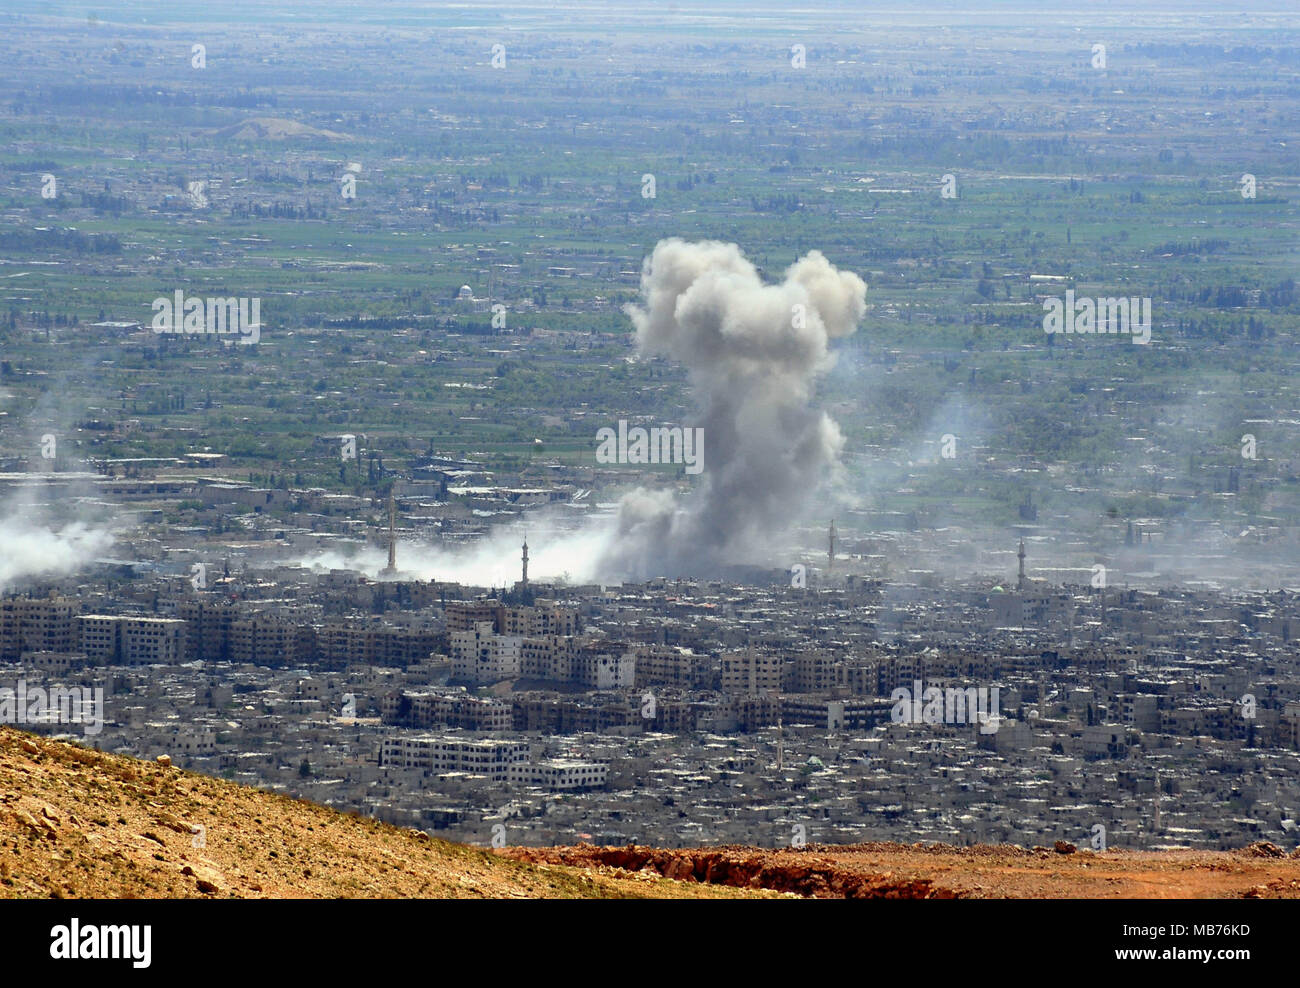 Damascus, Syria. 7th Apr, 2018. Smoke rises after the Syrian army's shelling targeted the Douma district in Eastern Ghouta countryside of Damascus, Syria, on April 7, 2018. The Syrian army on Saturday stormed the frontlines of the Islam Army in the Douma district of the capital Damascus' Eastern Ghouta countryside, state news agency SANA reported. Credit: Ammar Safarjalani/Xinhua/Alamy Live News - Stock Image